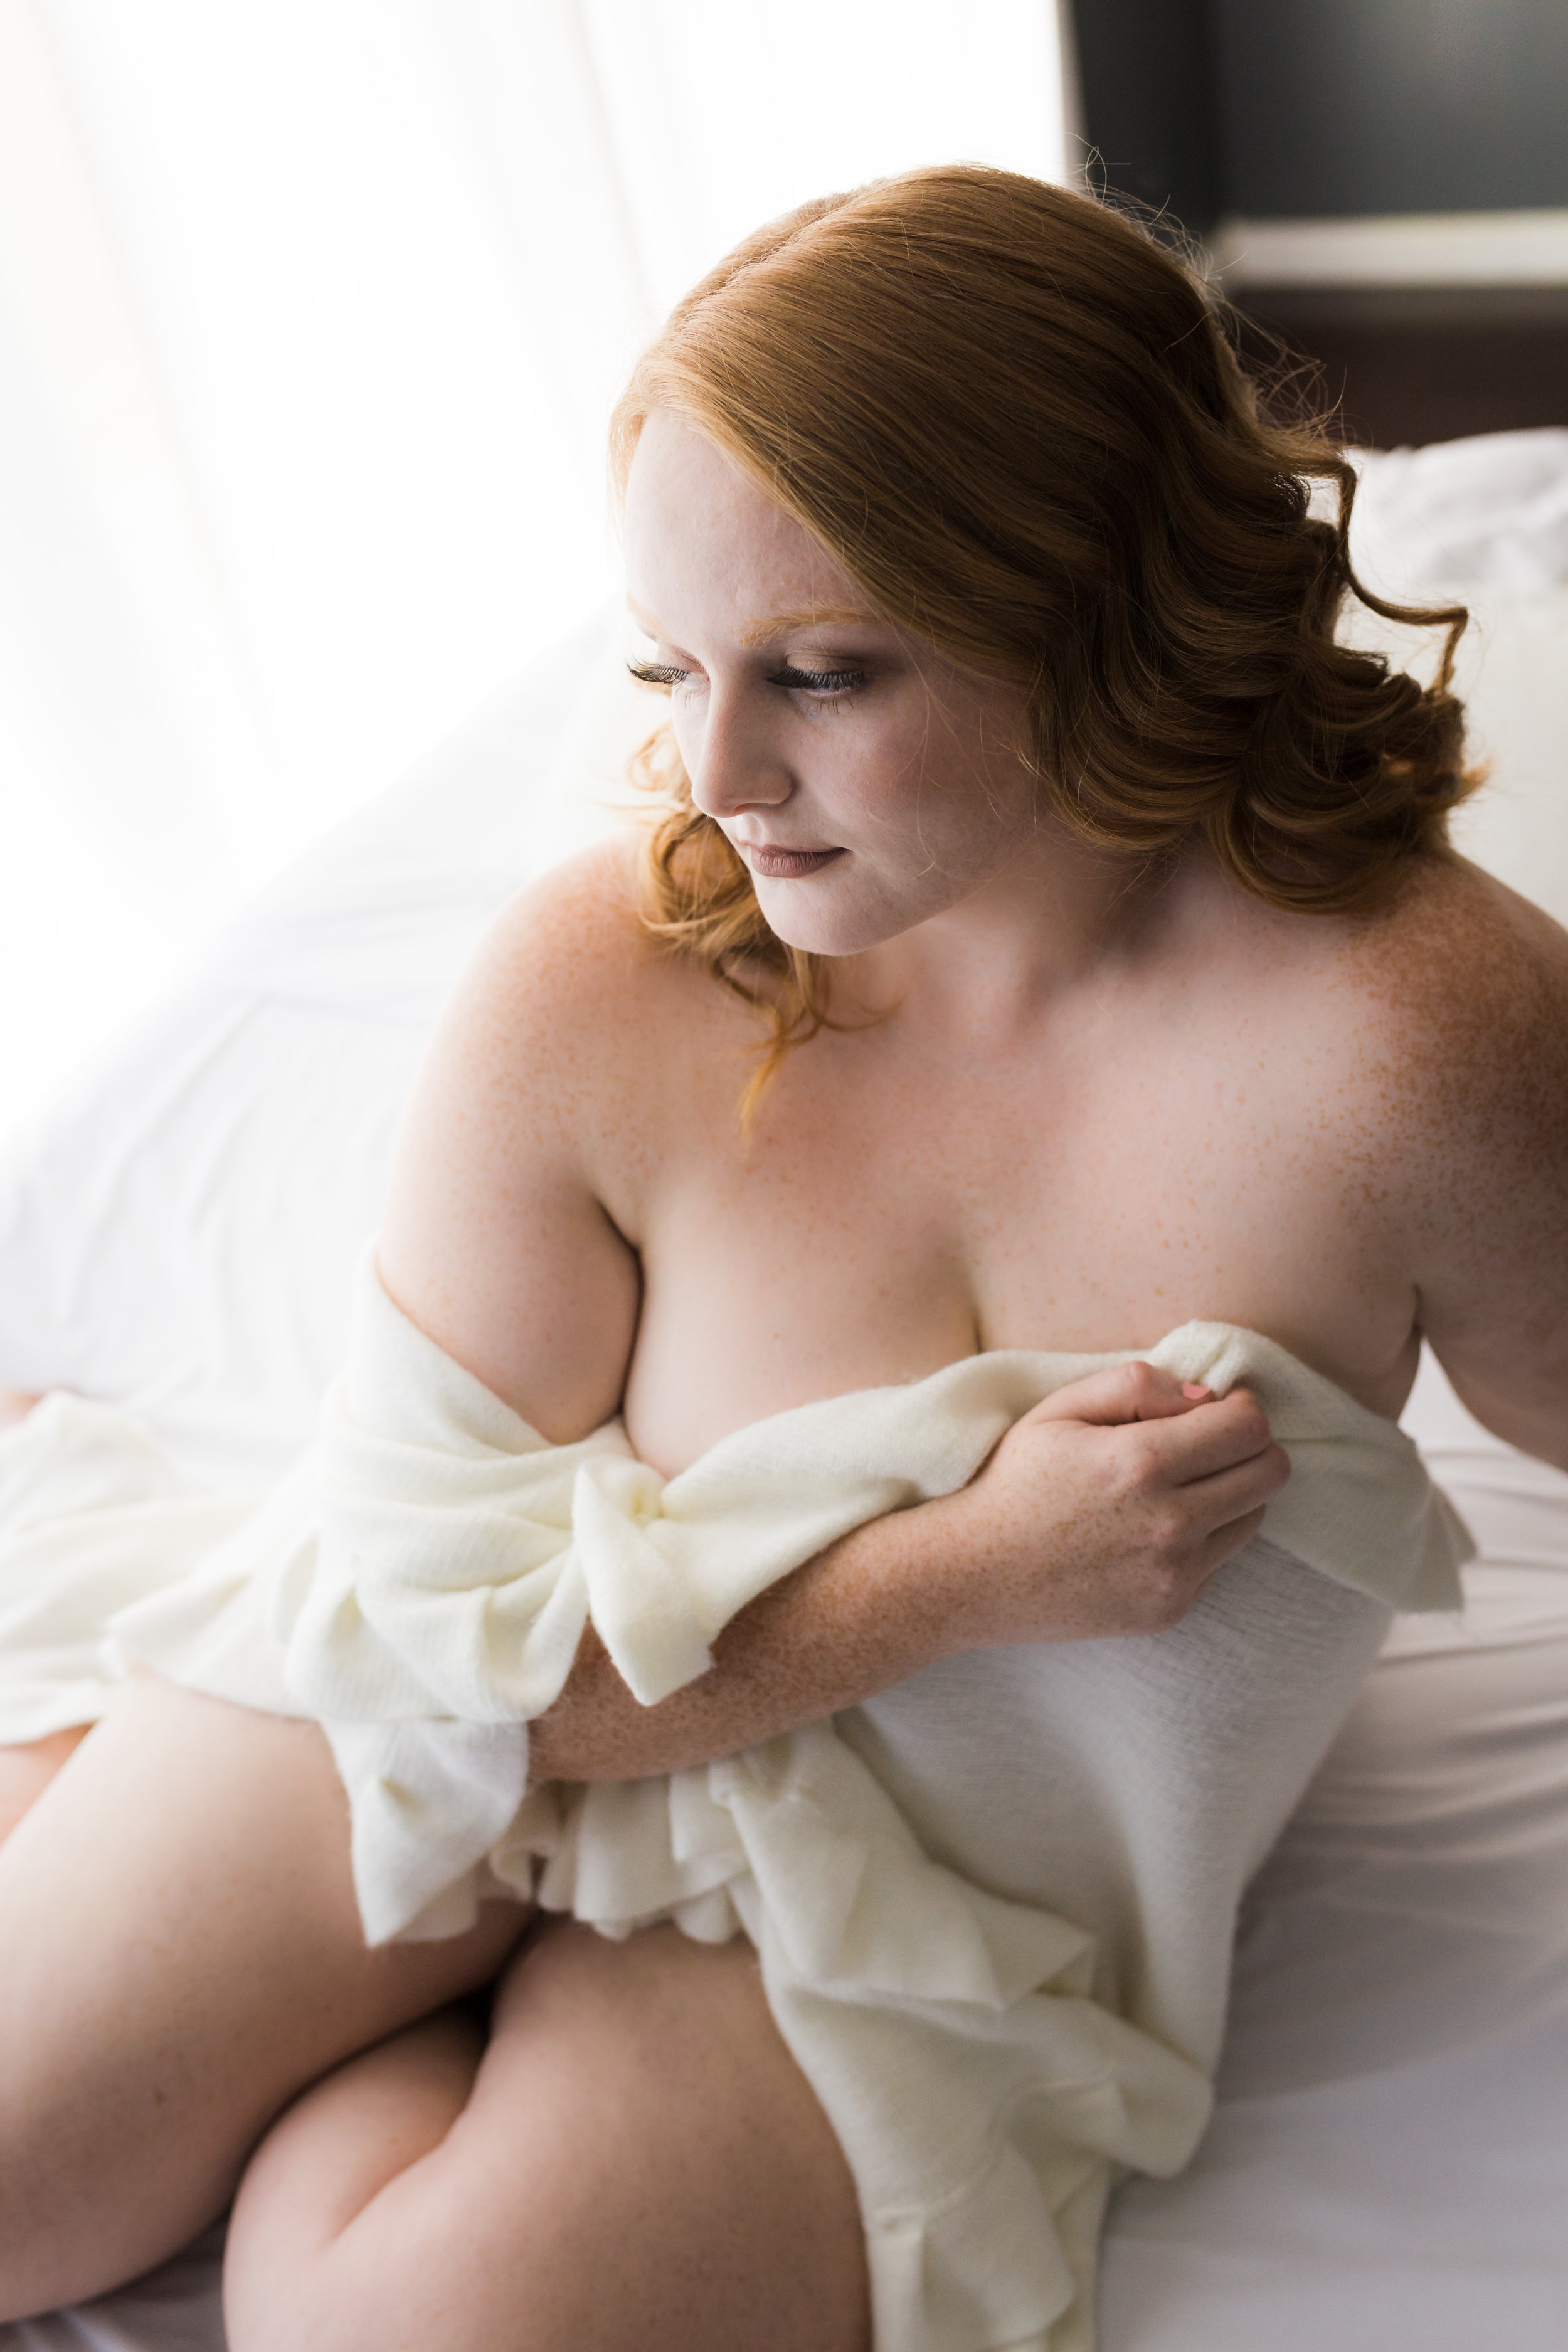 Nine19PhotographyRaleighNCBoudoirPhotographer-7518.jpg